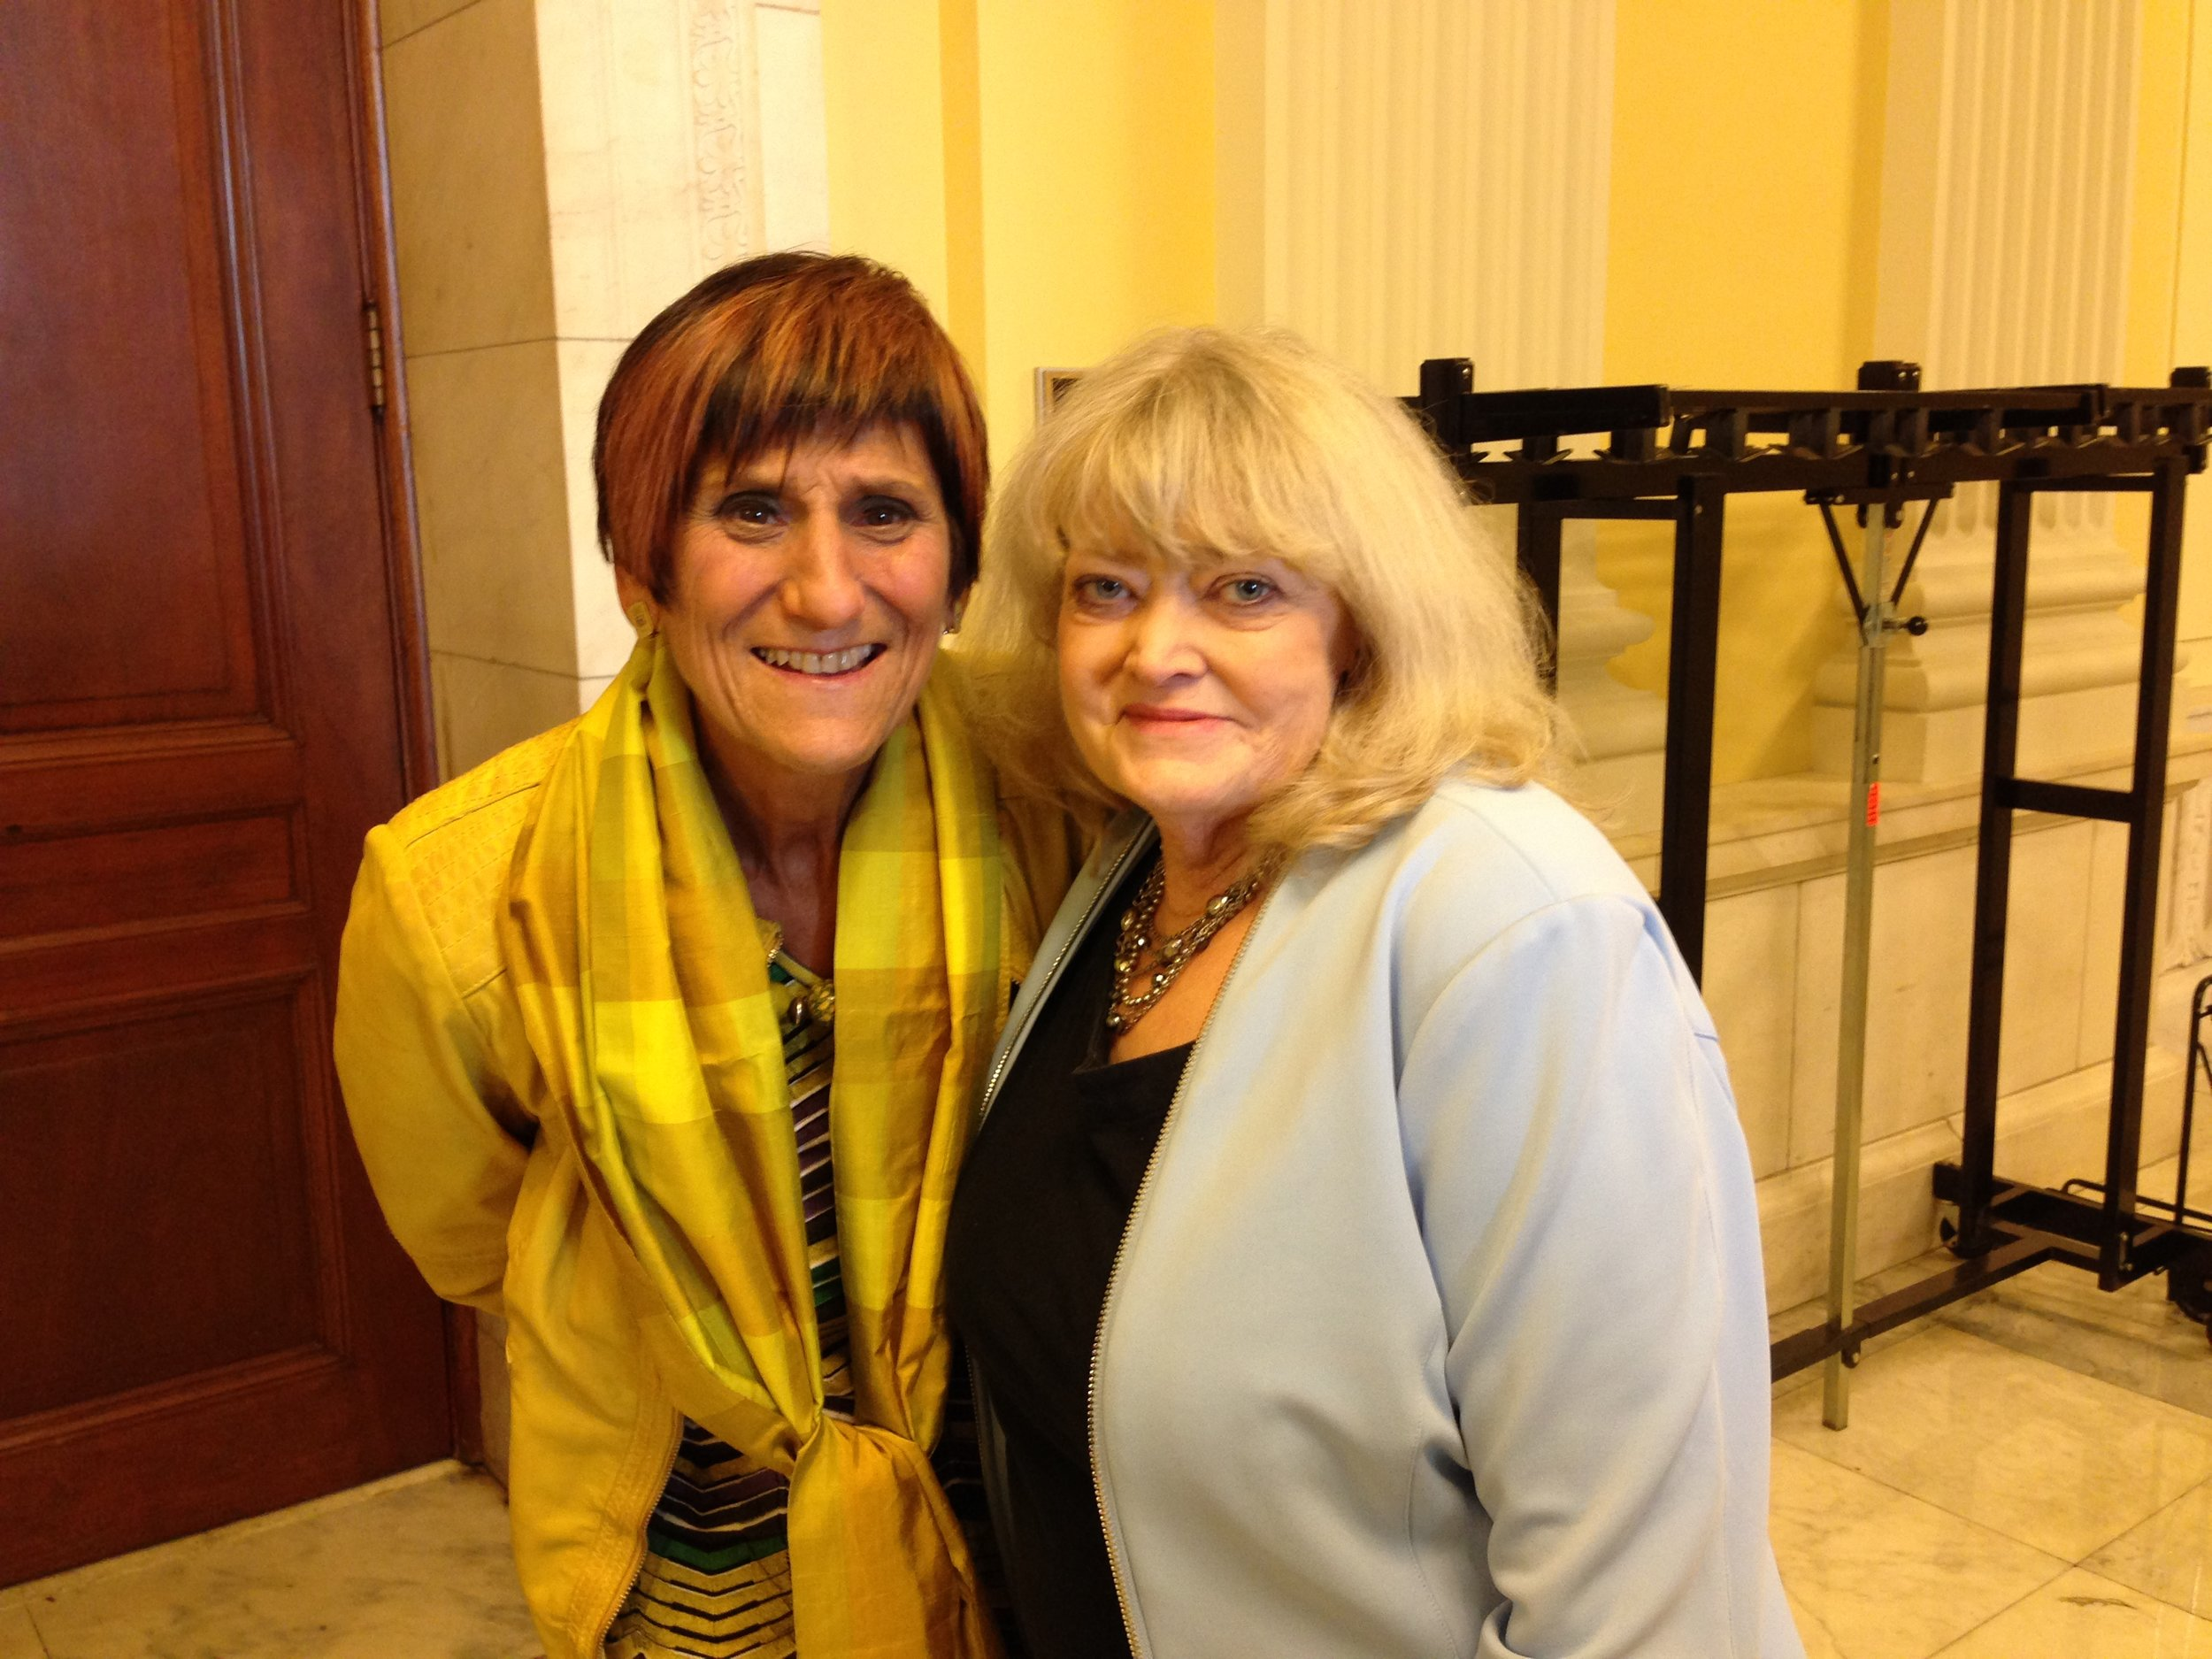 Cyndy with Representative Rosa DeLauro (D-CT) during the 2015 CEF Conference